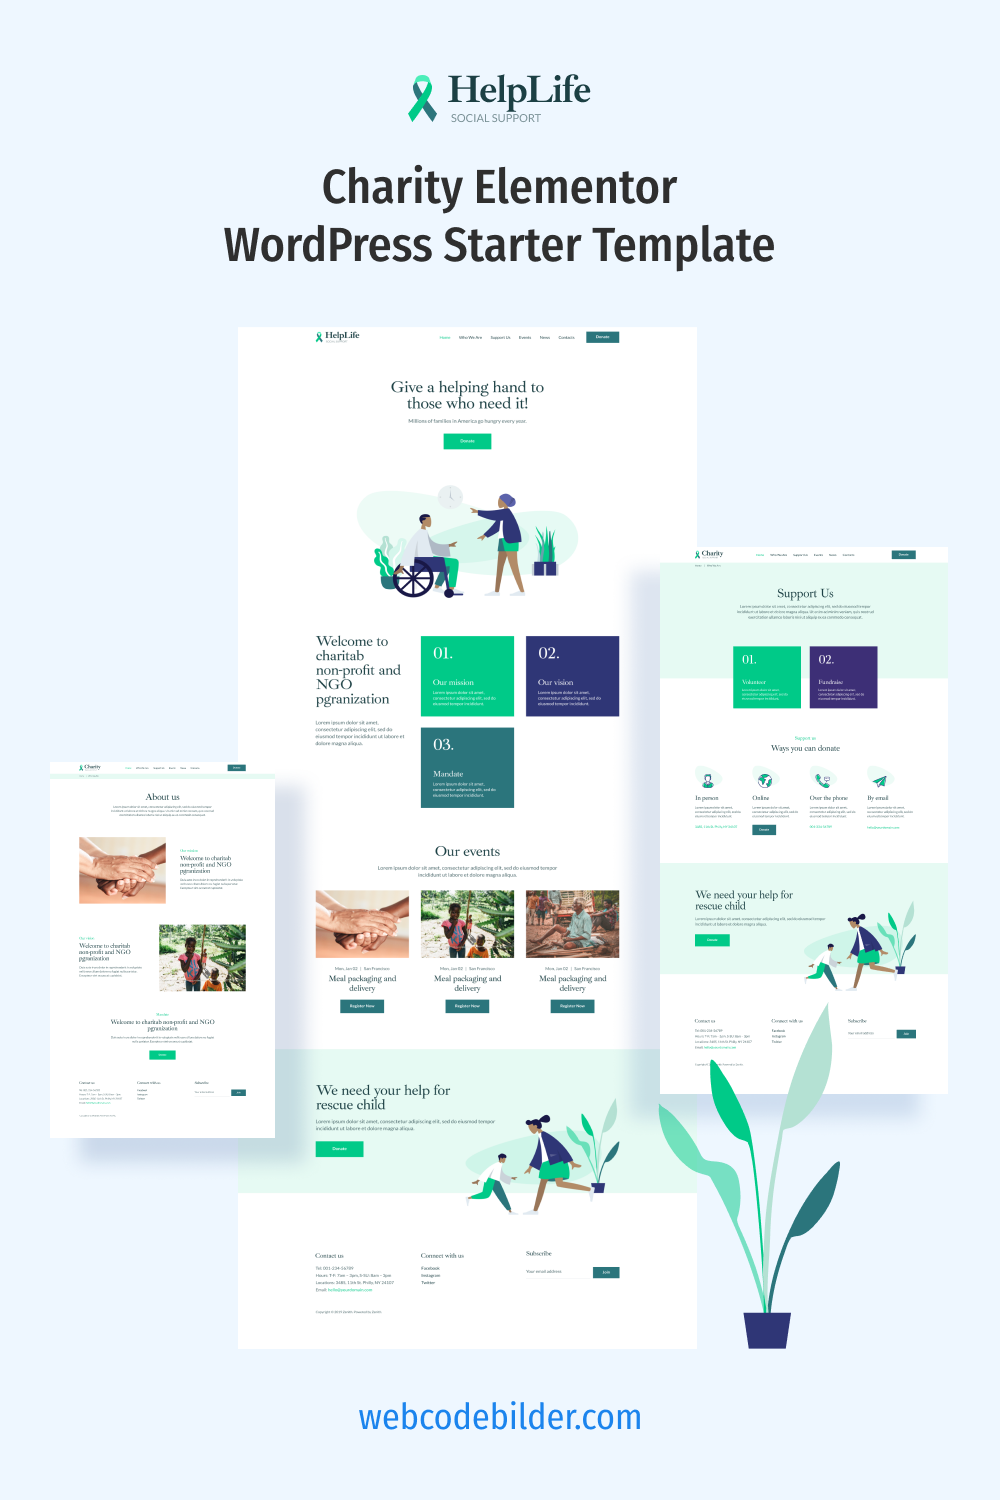 Helplife — charity Elementor WordPress starter template